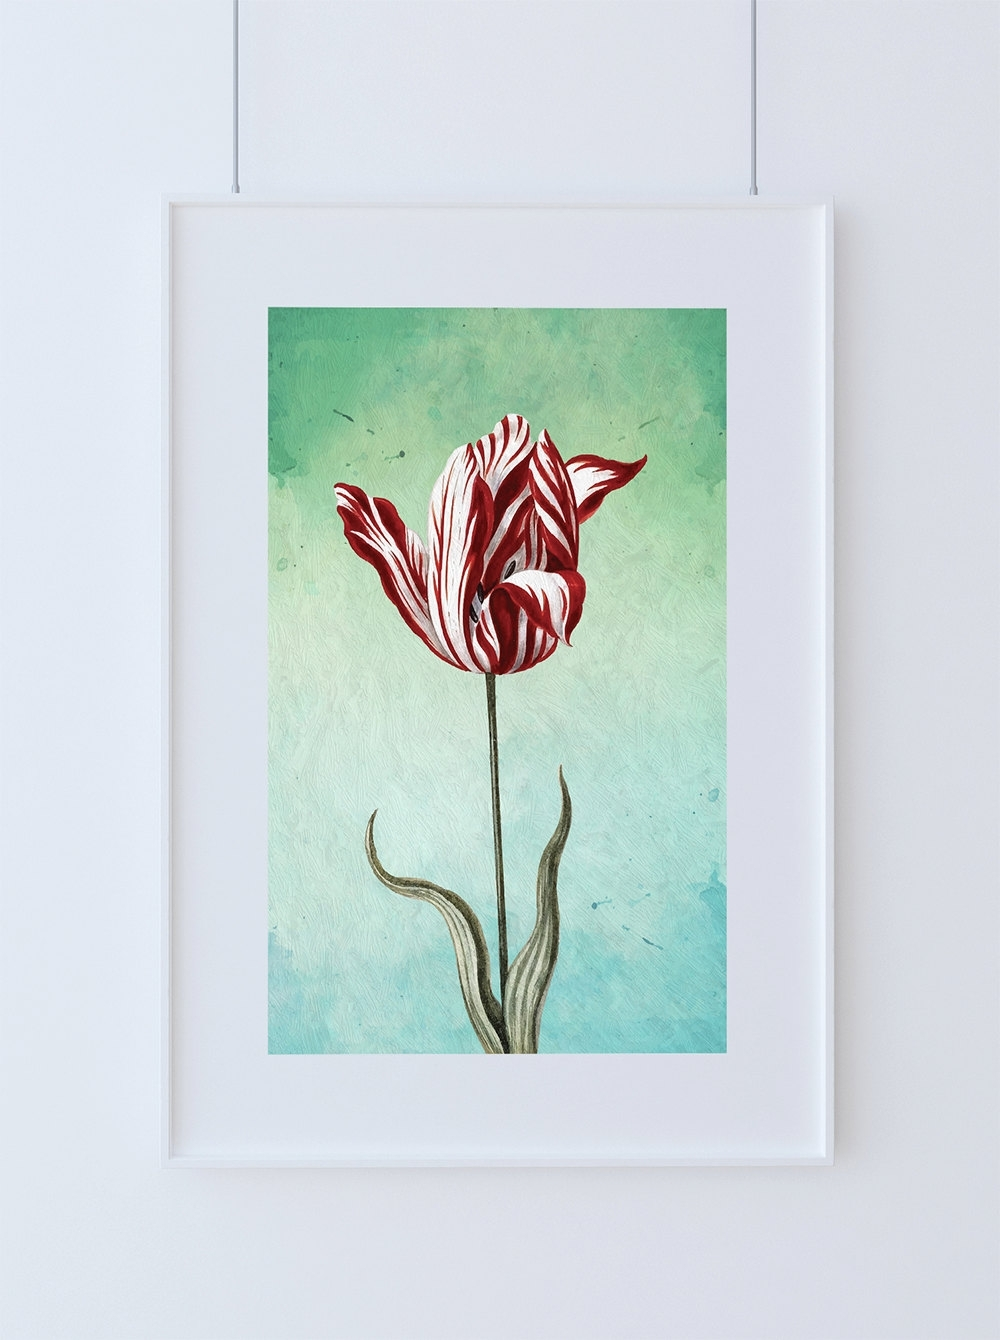 Tulip Print Tulip Art Botanical Print Flower Tulips Decor Floral Throughout Recent Floral Wall Art (View 18 of 20)